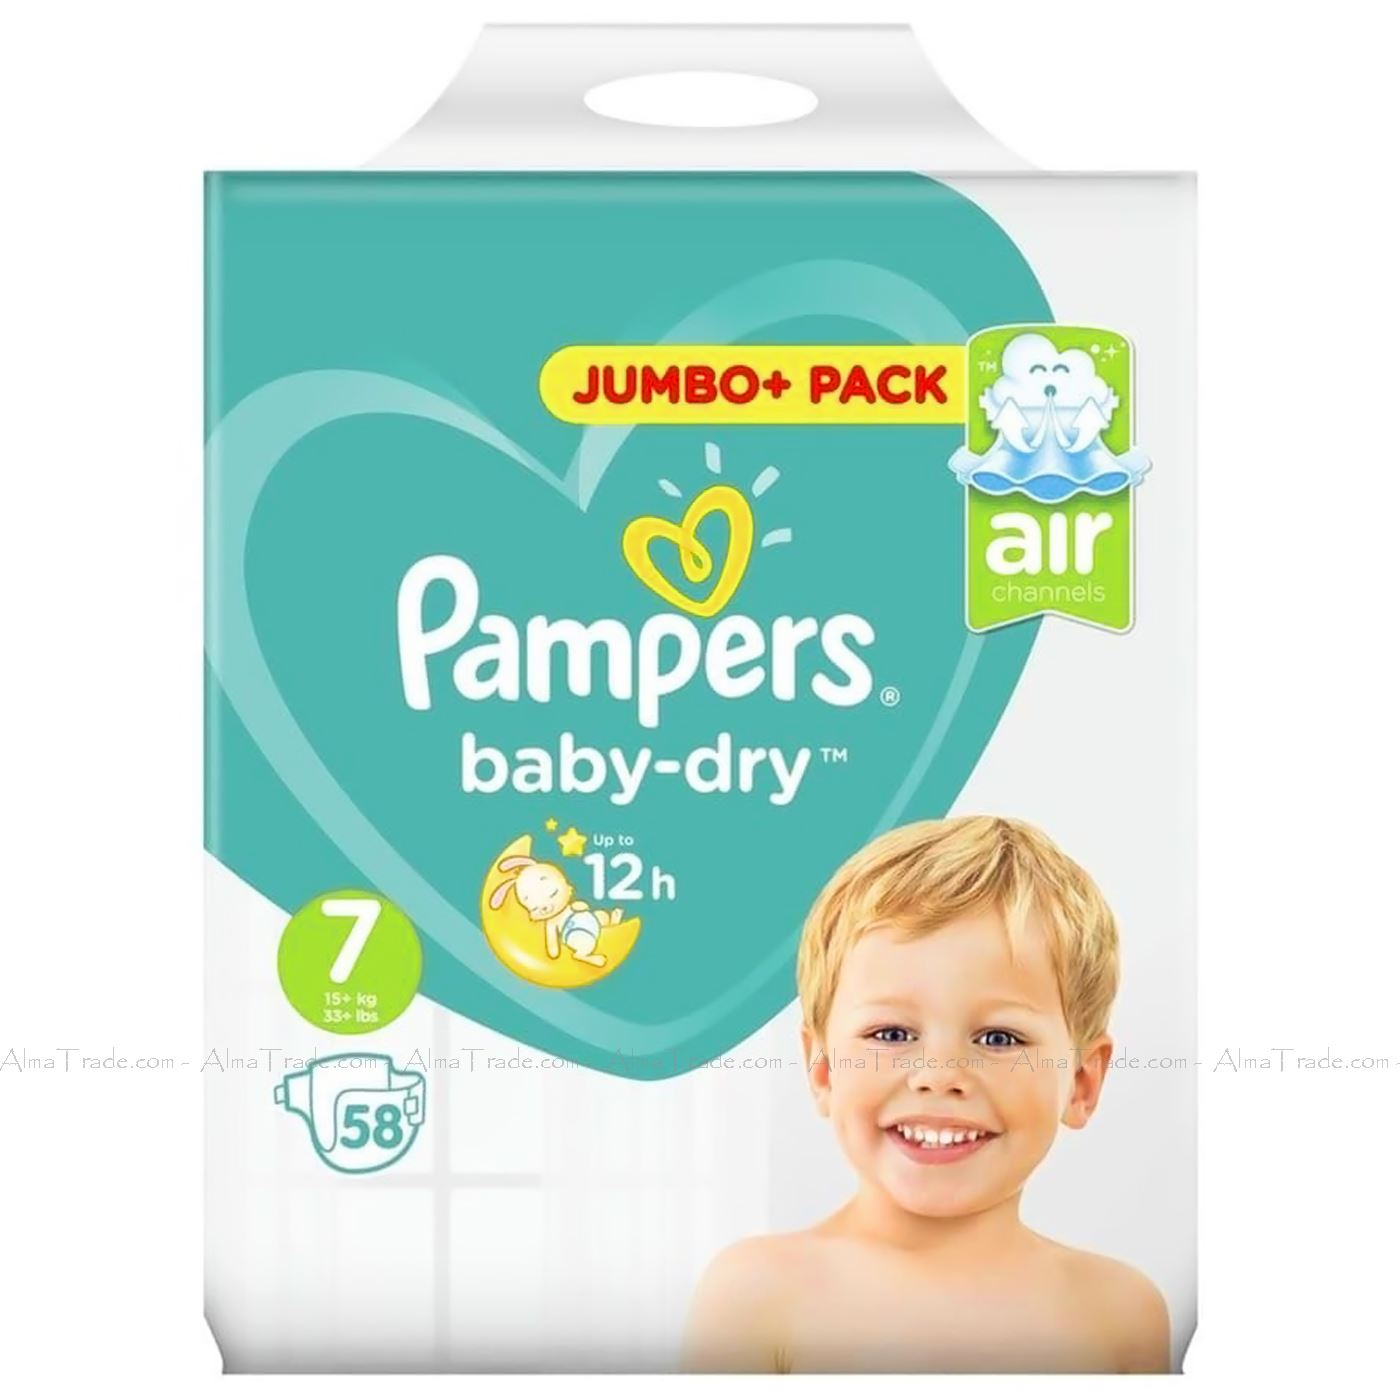 Pampers-Baby-Dry-Nappy-Air-Channels-Nappies-Size-1-2-3-4-5-6-7-Jumbo-Giga-Pack thumbnail 35